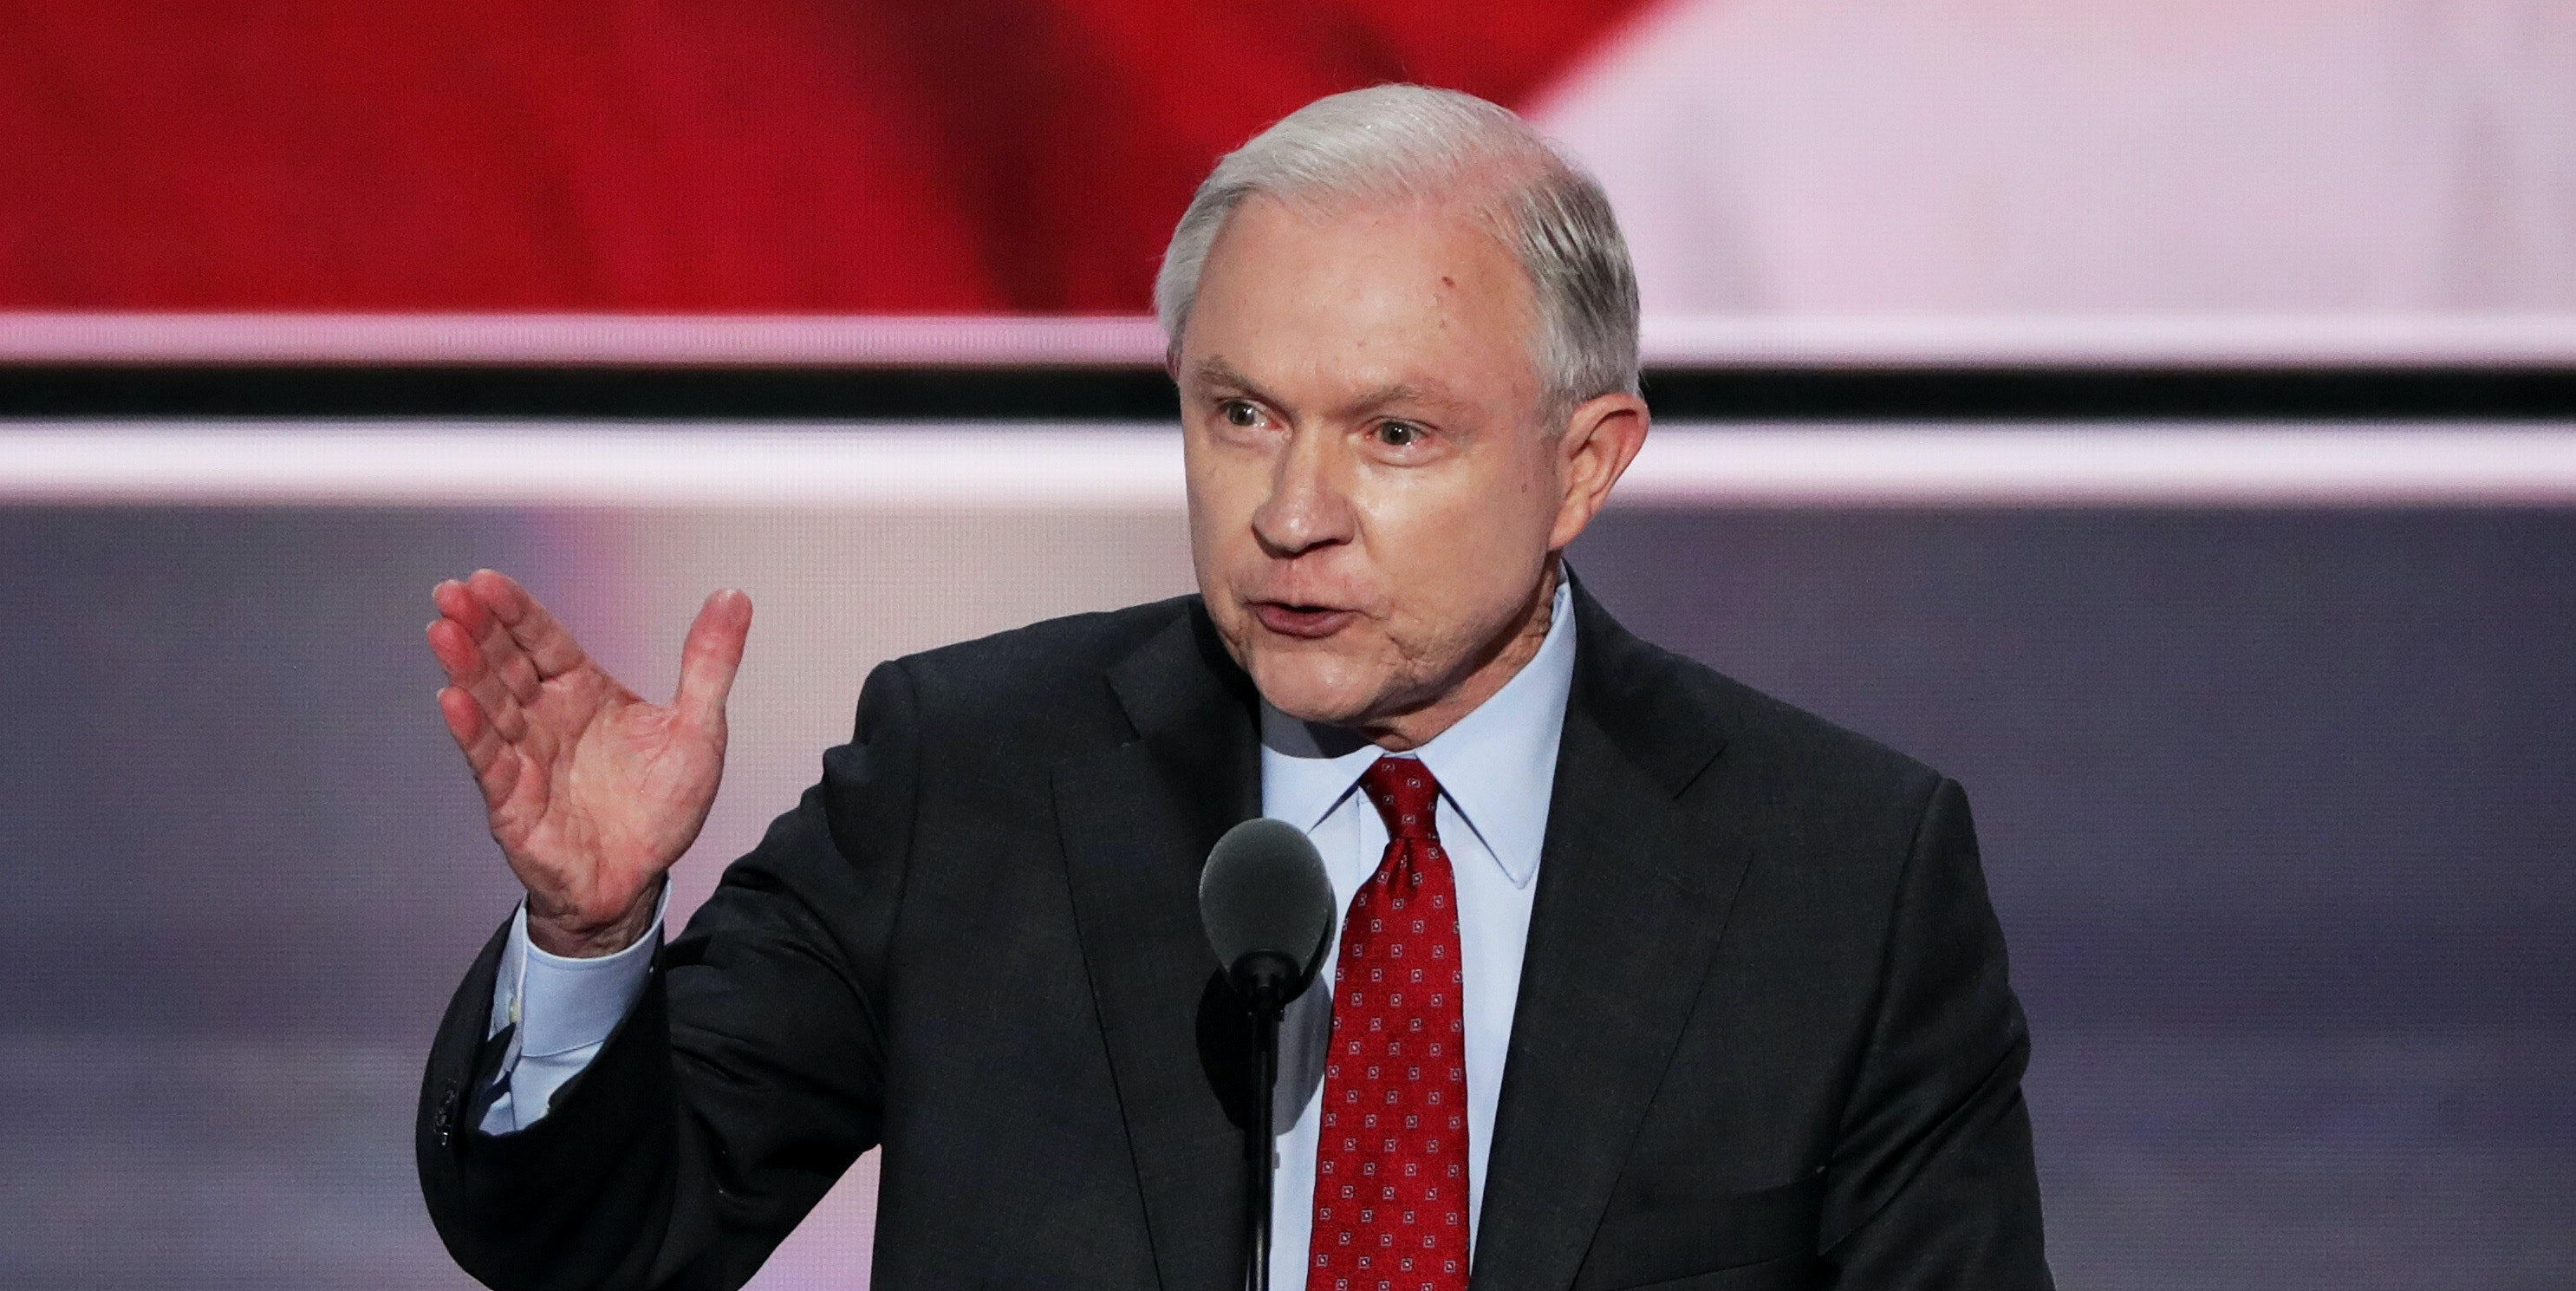 Sen. Jeff Sessions (R-AL) delivers a speech during the opening of the second day of the Republican National Convention.